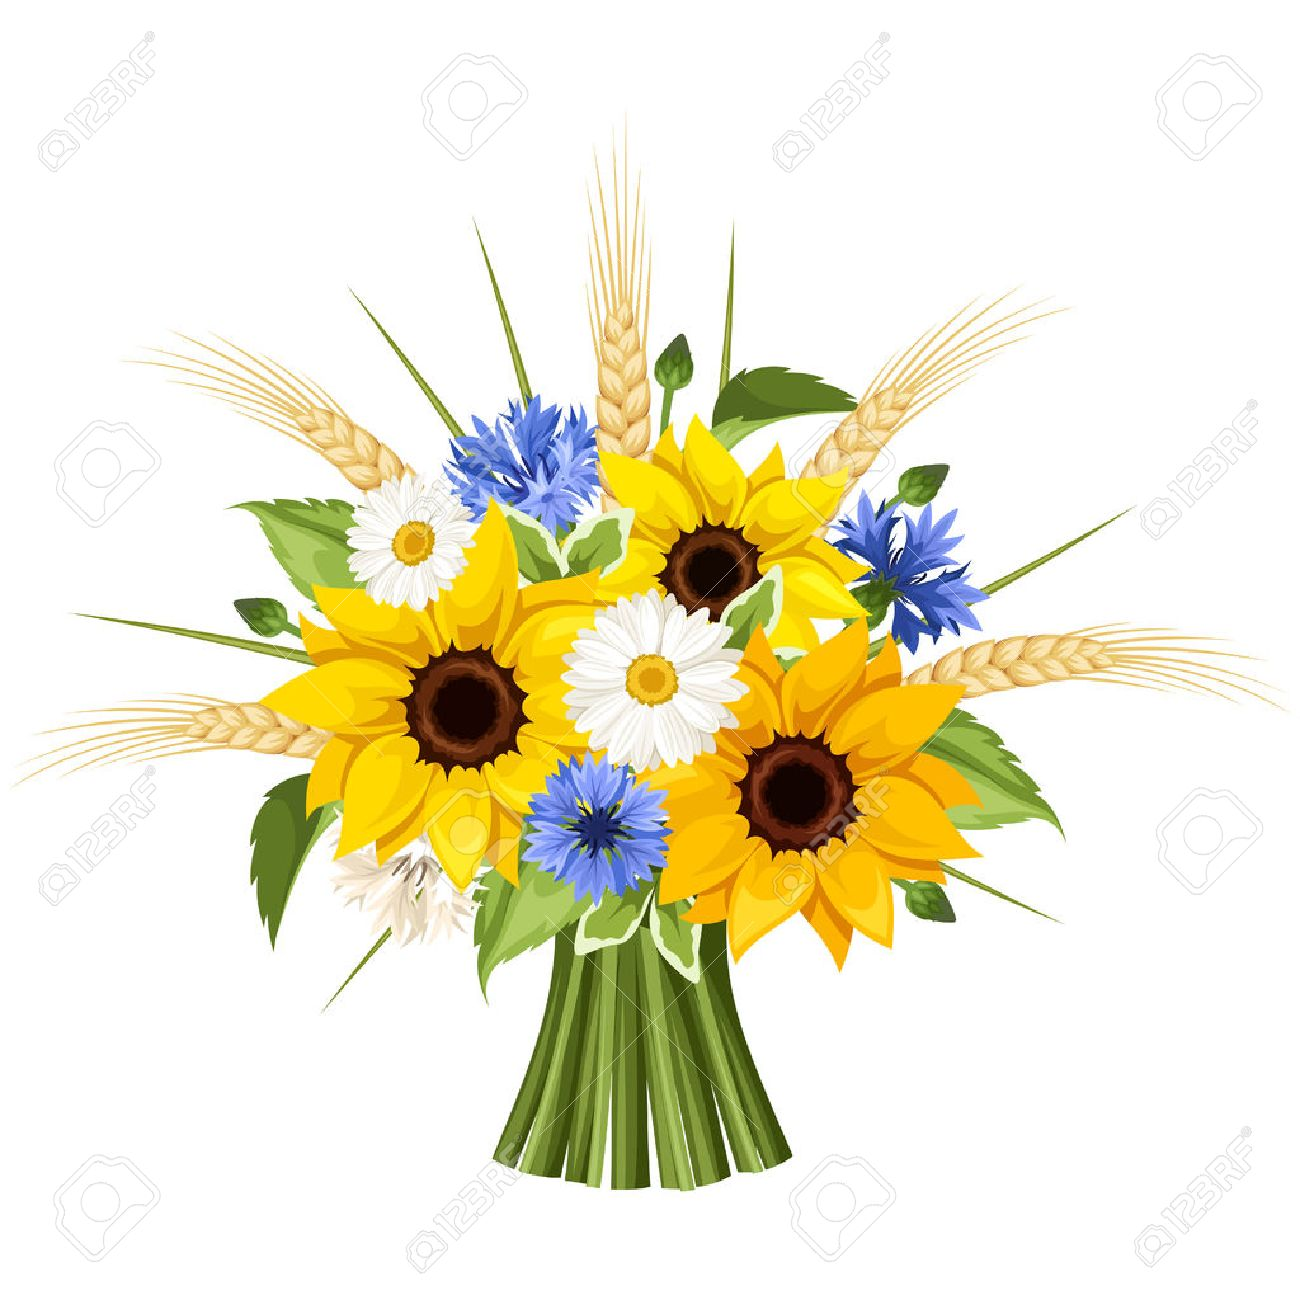 Bouquet Of Sunflowers Daisies Cornflowers And Ears Wheat Vector Illustration Stock